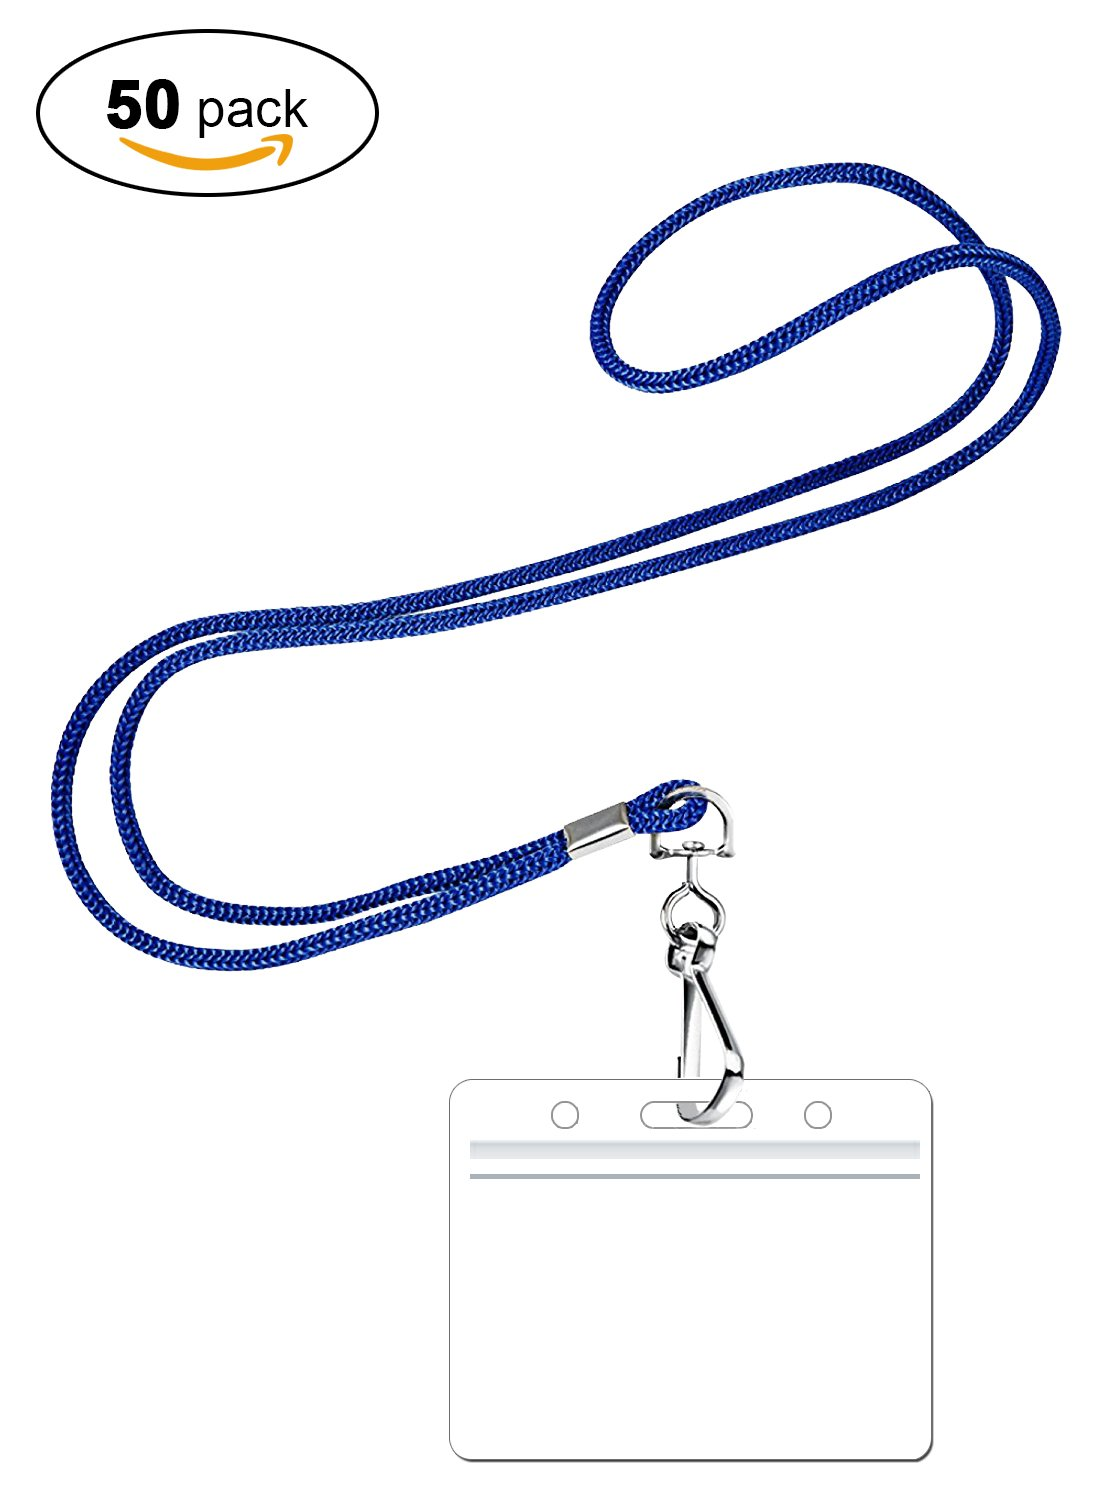 PROMOKING Woven Lanyard with Horizontal ID Badge Holder and Swivel Hook Available in 3 Colors | Red, Royal Blue, Black (50pk, Royal Blue)